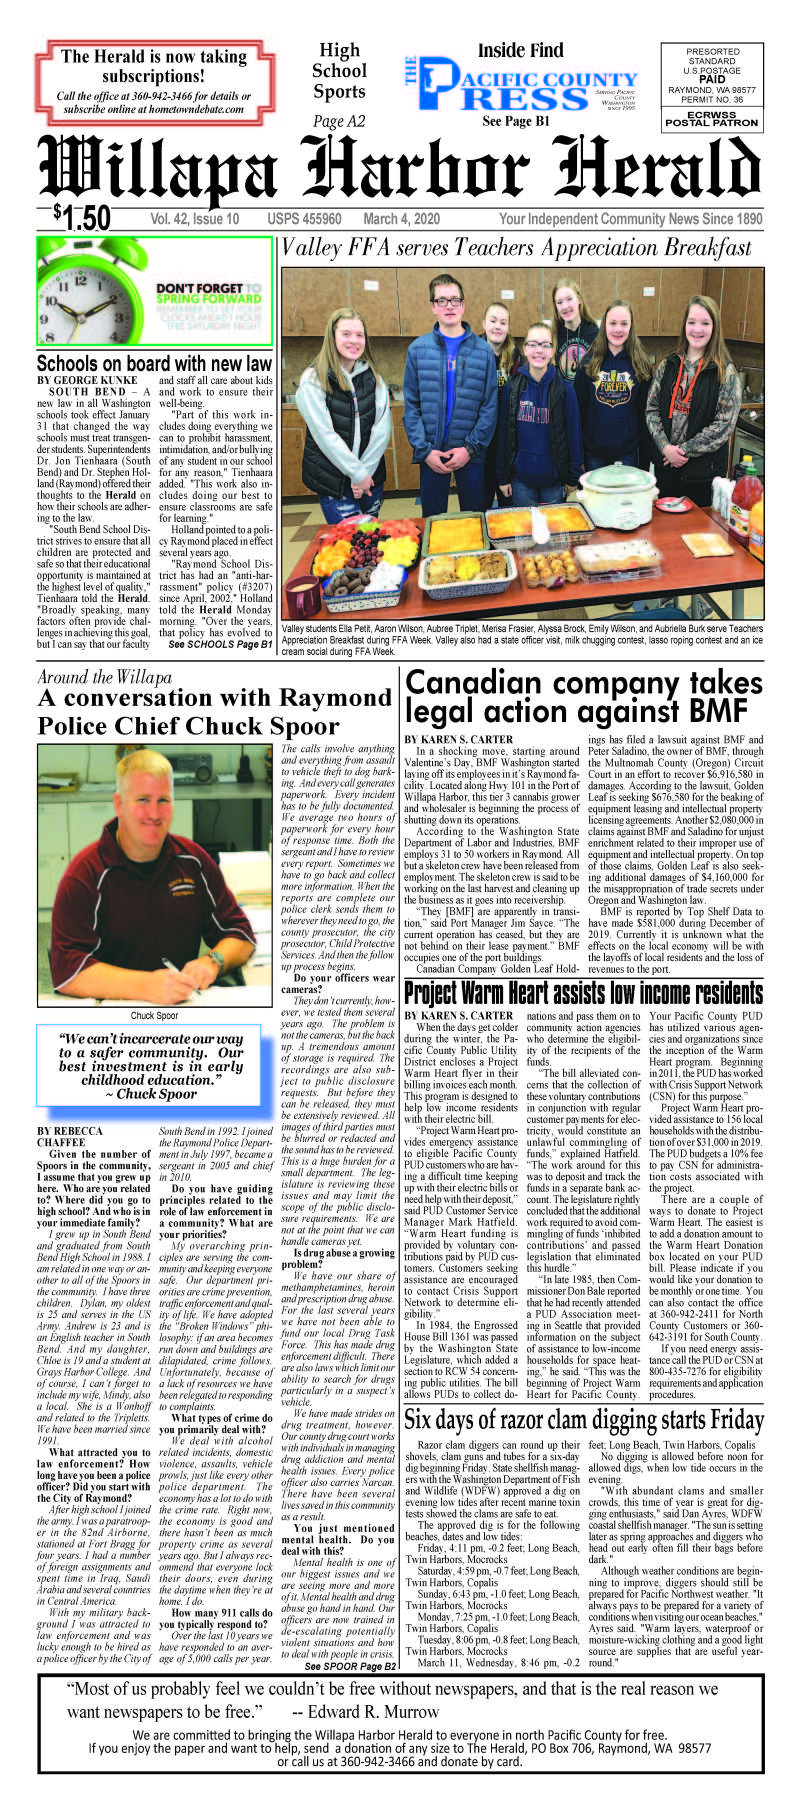 March 4, 2020 Willapa Harbor Herald and Pacific County Press